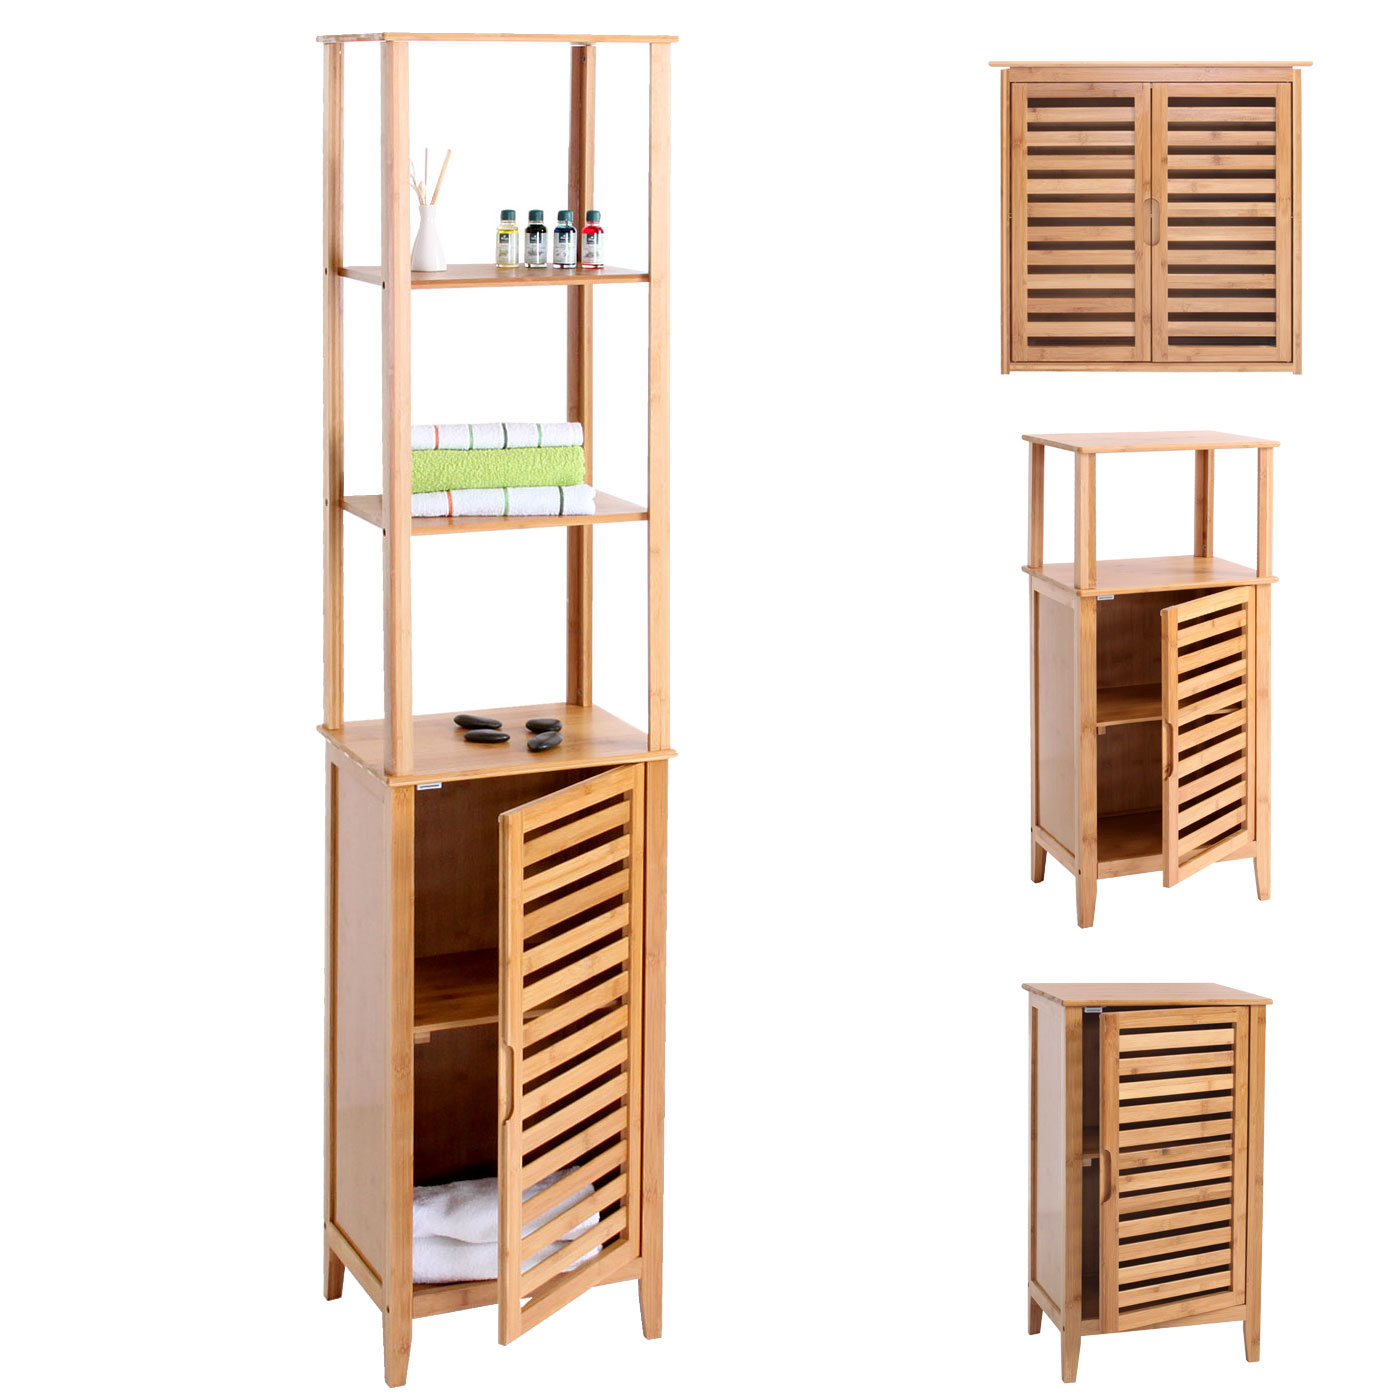 Badezimmer set narita badschrank badregal standregal mit for Badezimmer garnituren